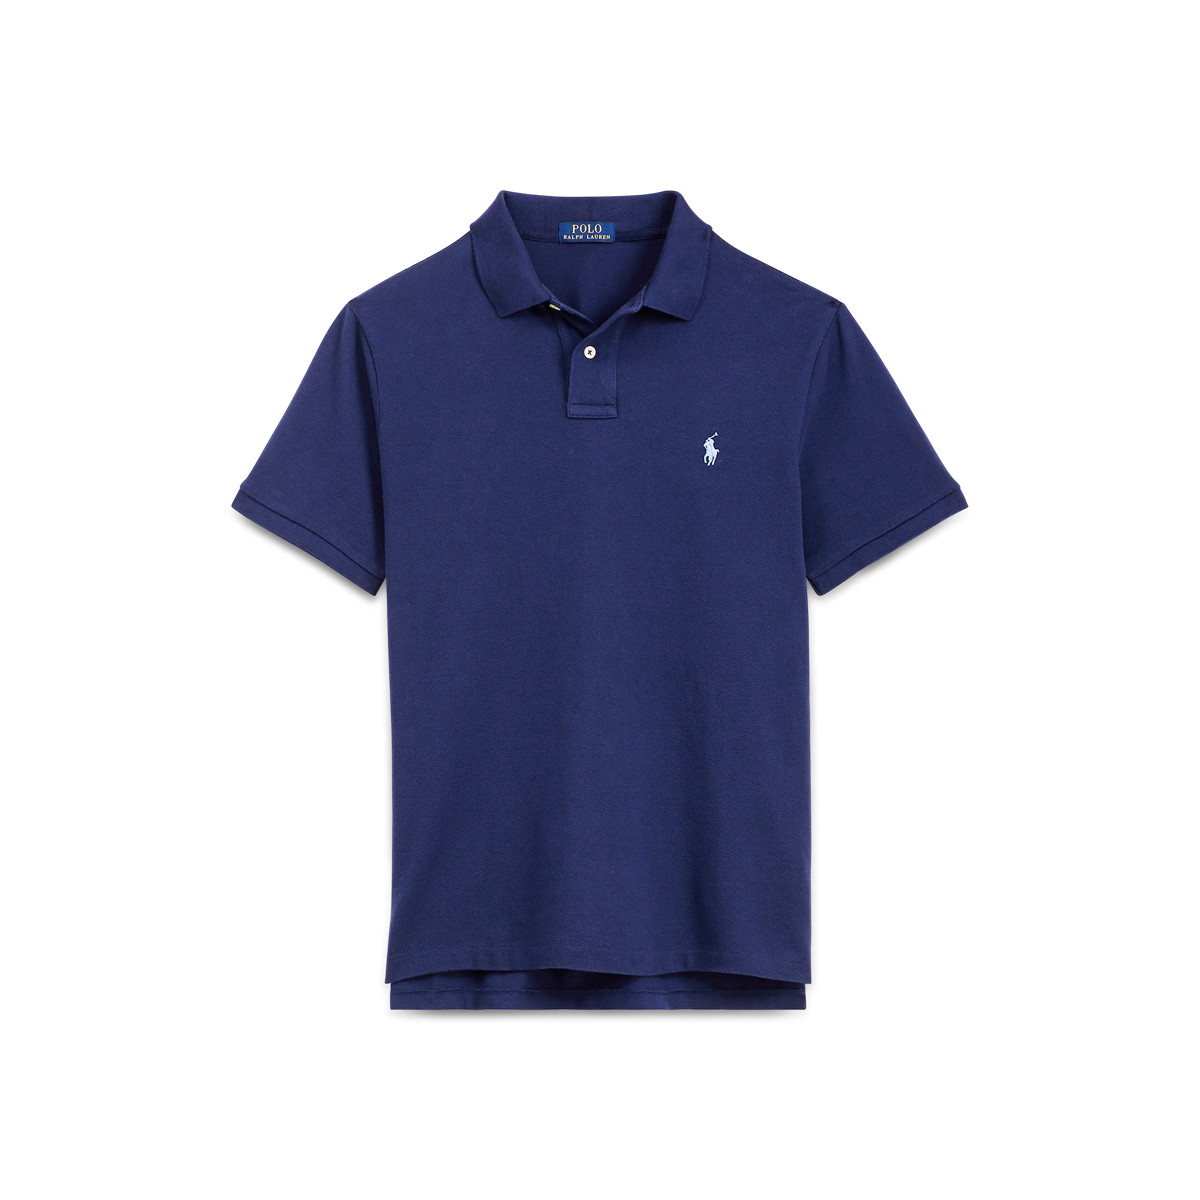 154675ae01ac1f Custom Slim Fit Mesh Polo